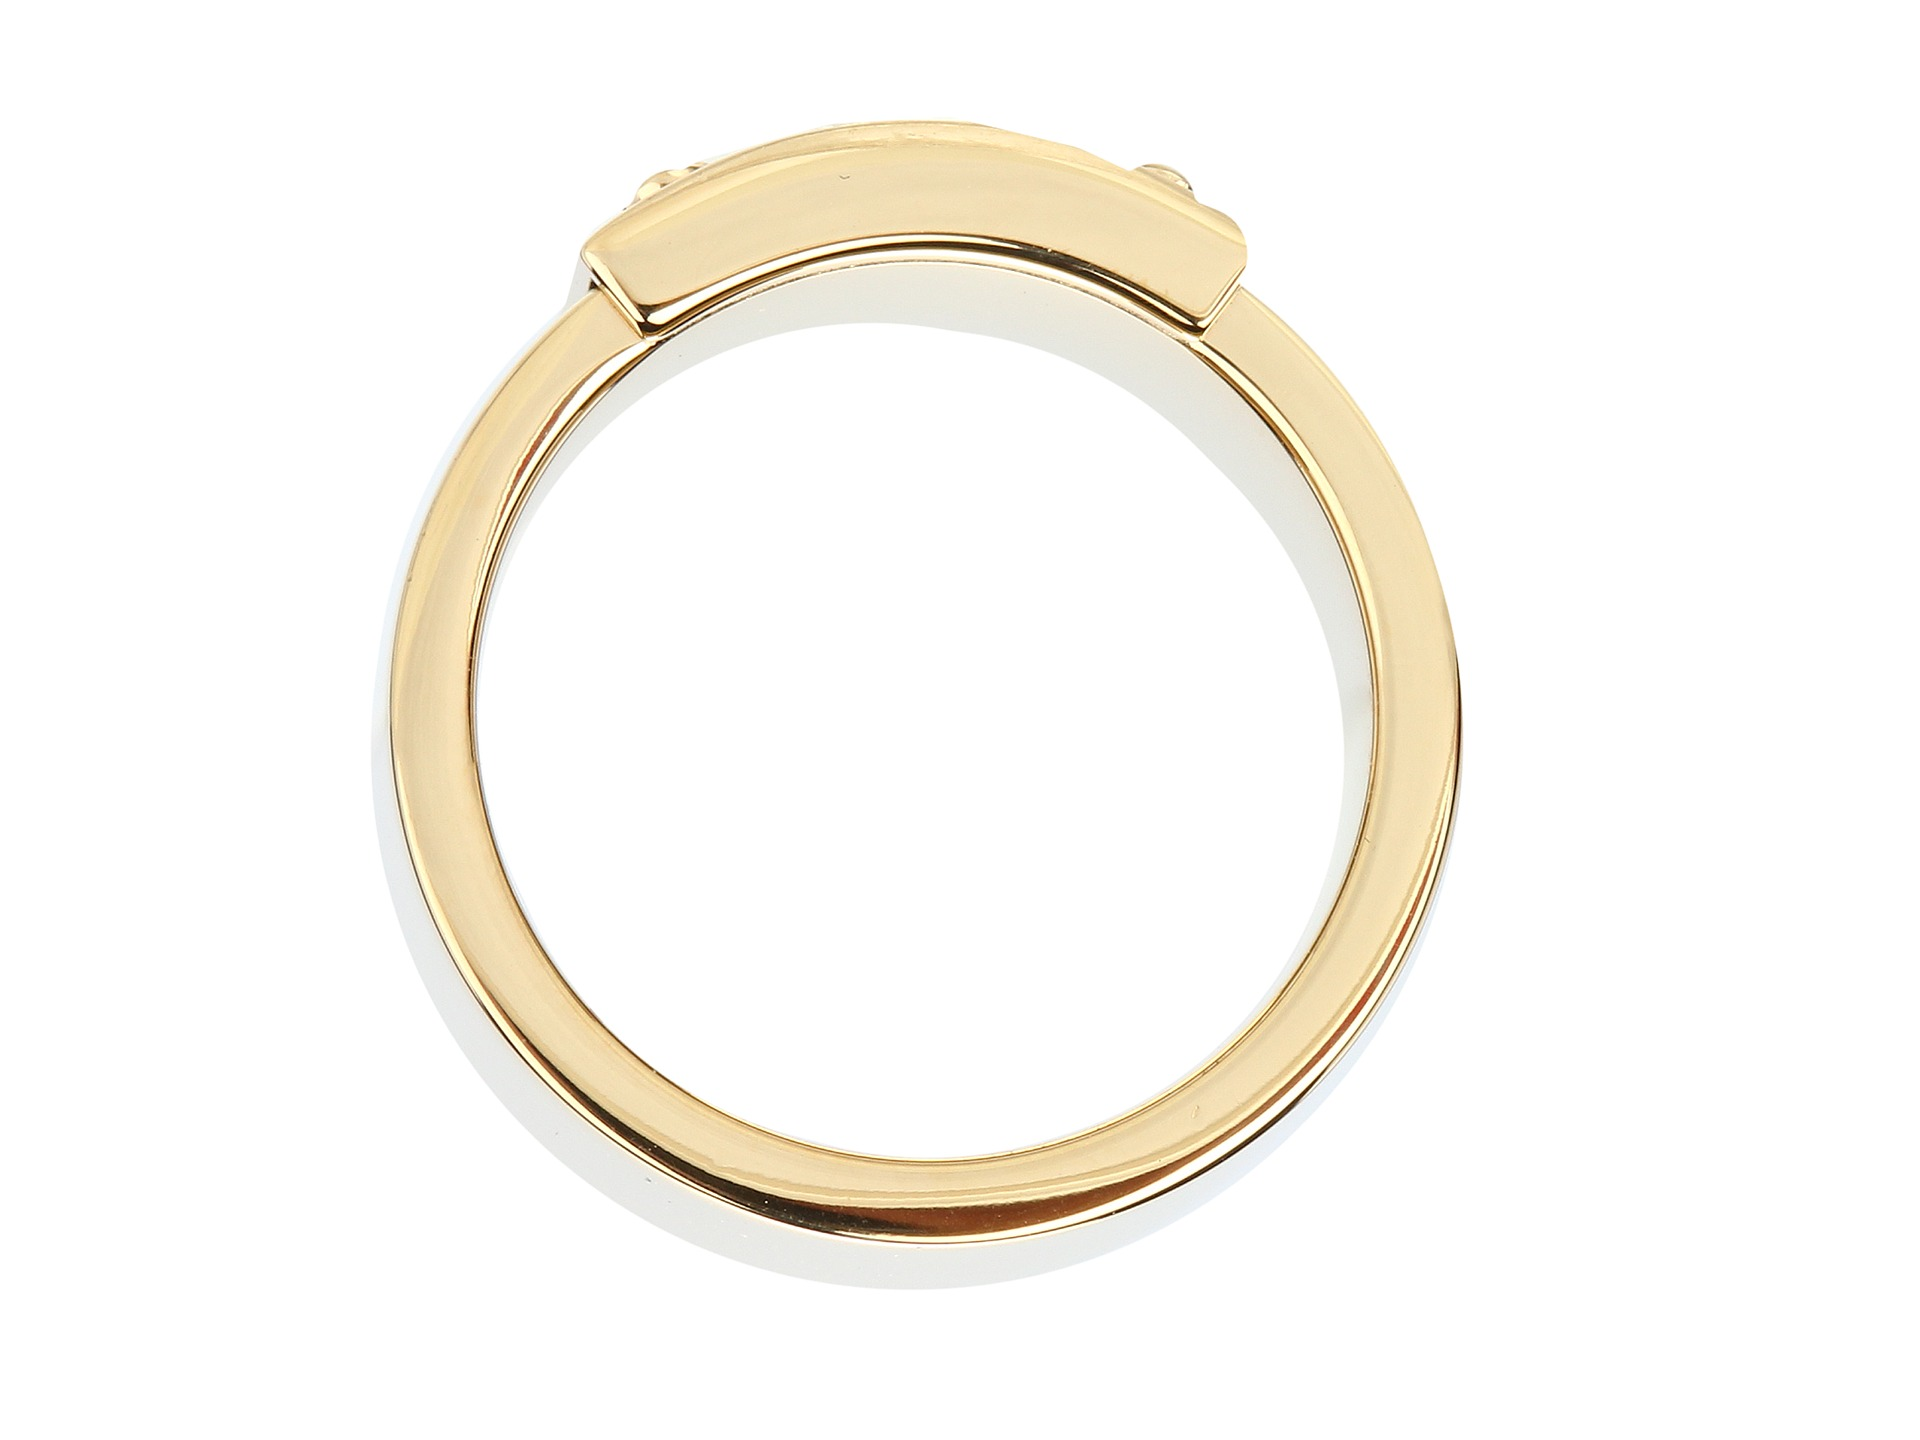 michael kors collection logo plate ring shipped free at zappos. Black Bedroom Furniture Sets. Home Design Ideas